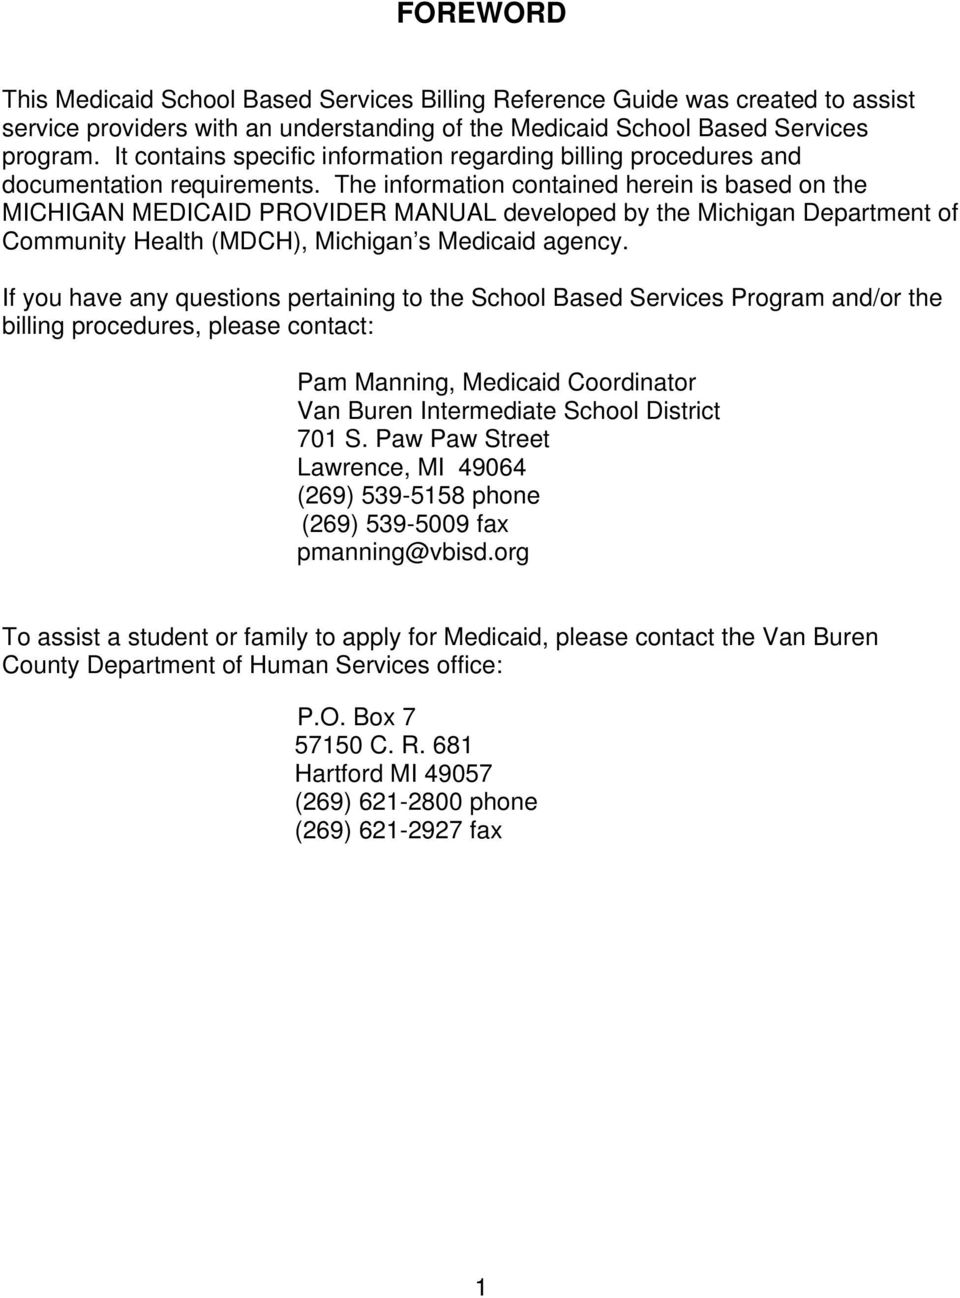 The information contained herein is based on the MICHIGAN MEDICAID PROVIDER MANUAL developed by the Michigan Department of Community Health (MDCH), Michigan s Medicaid agency.